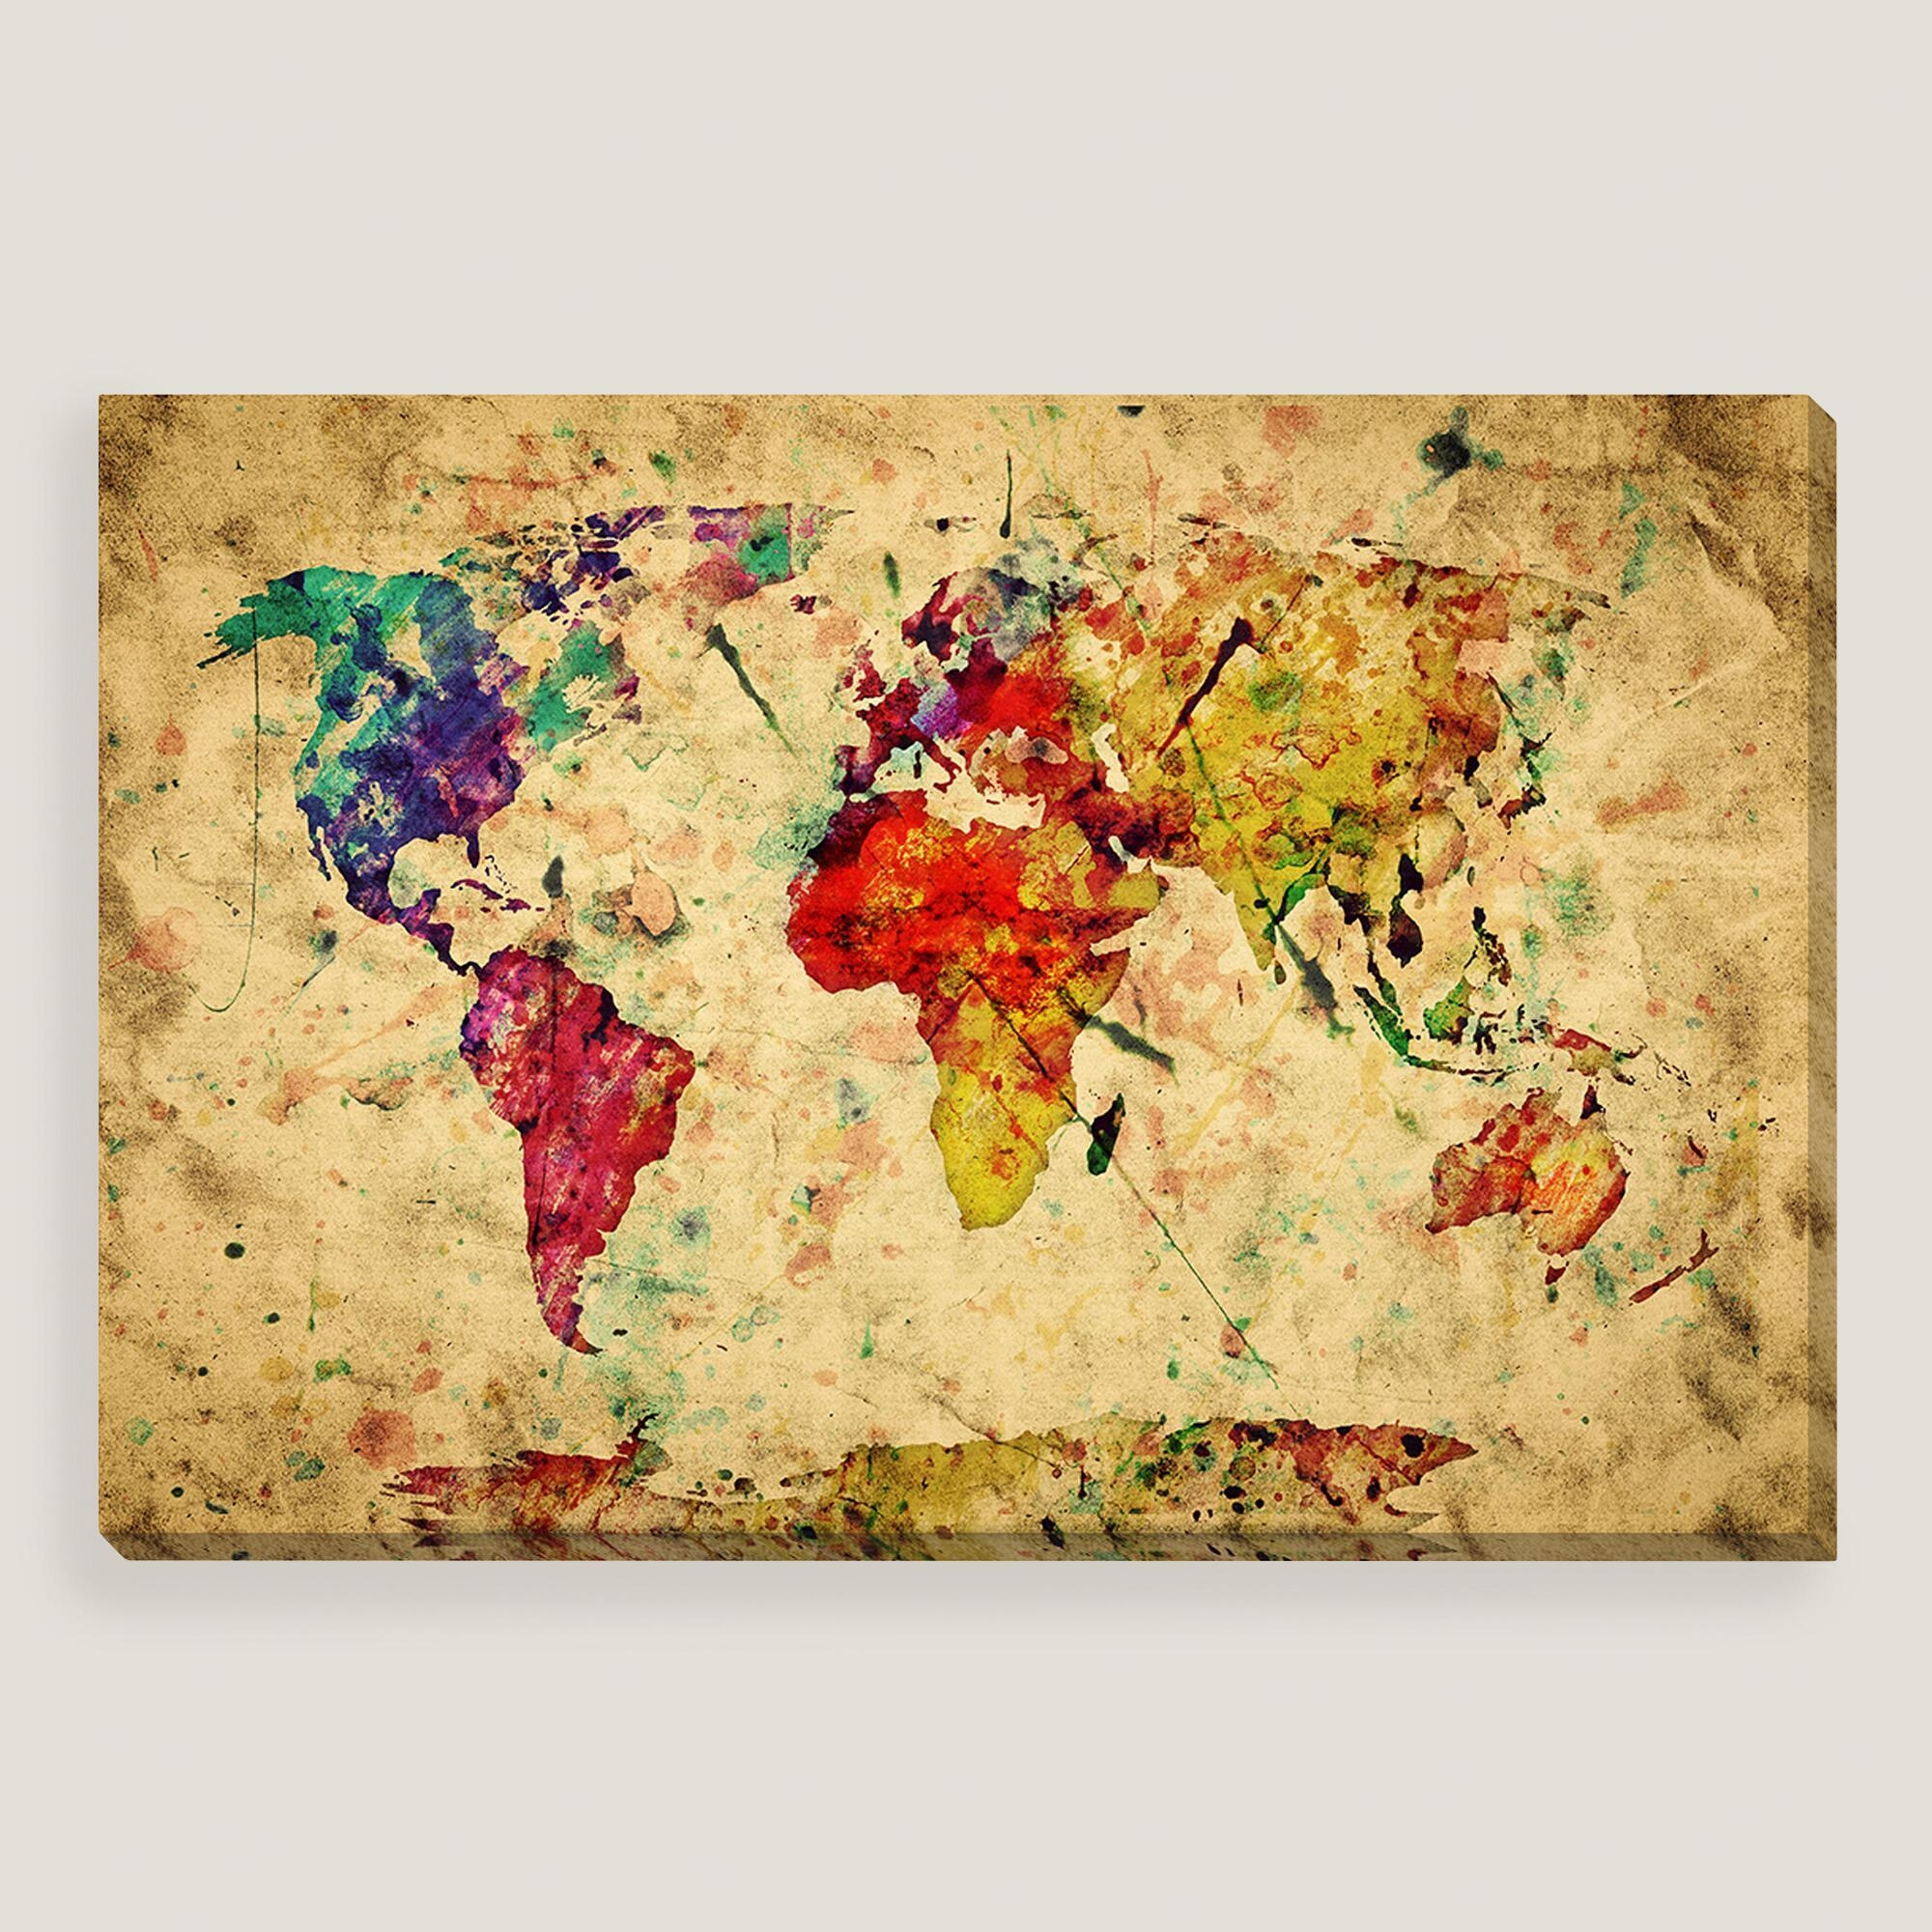 Wall Art Design Ideas: Wooden Dimensions Vintage World Map Wall Intended For Antique Map Wall Art (Image 19 of 20)